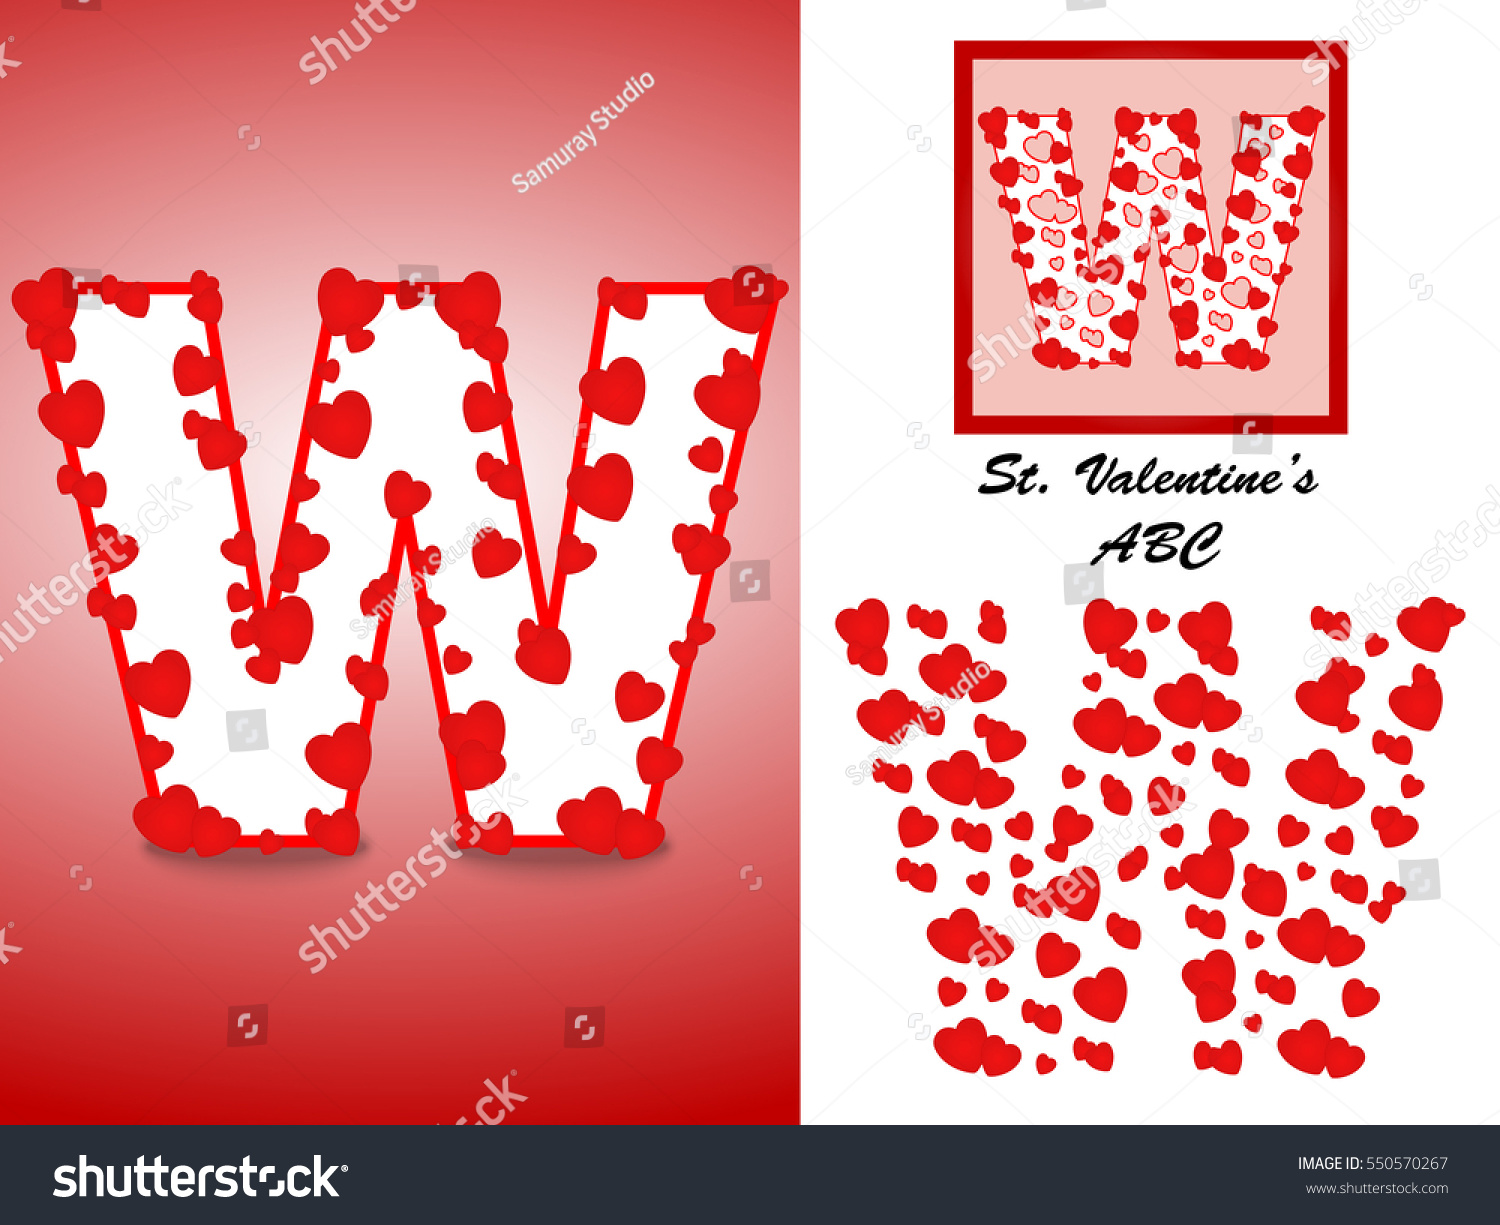 Alphabet Letter W Red Heart Valentine Stock Vector (Royalty Free ...